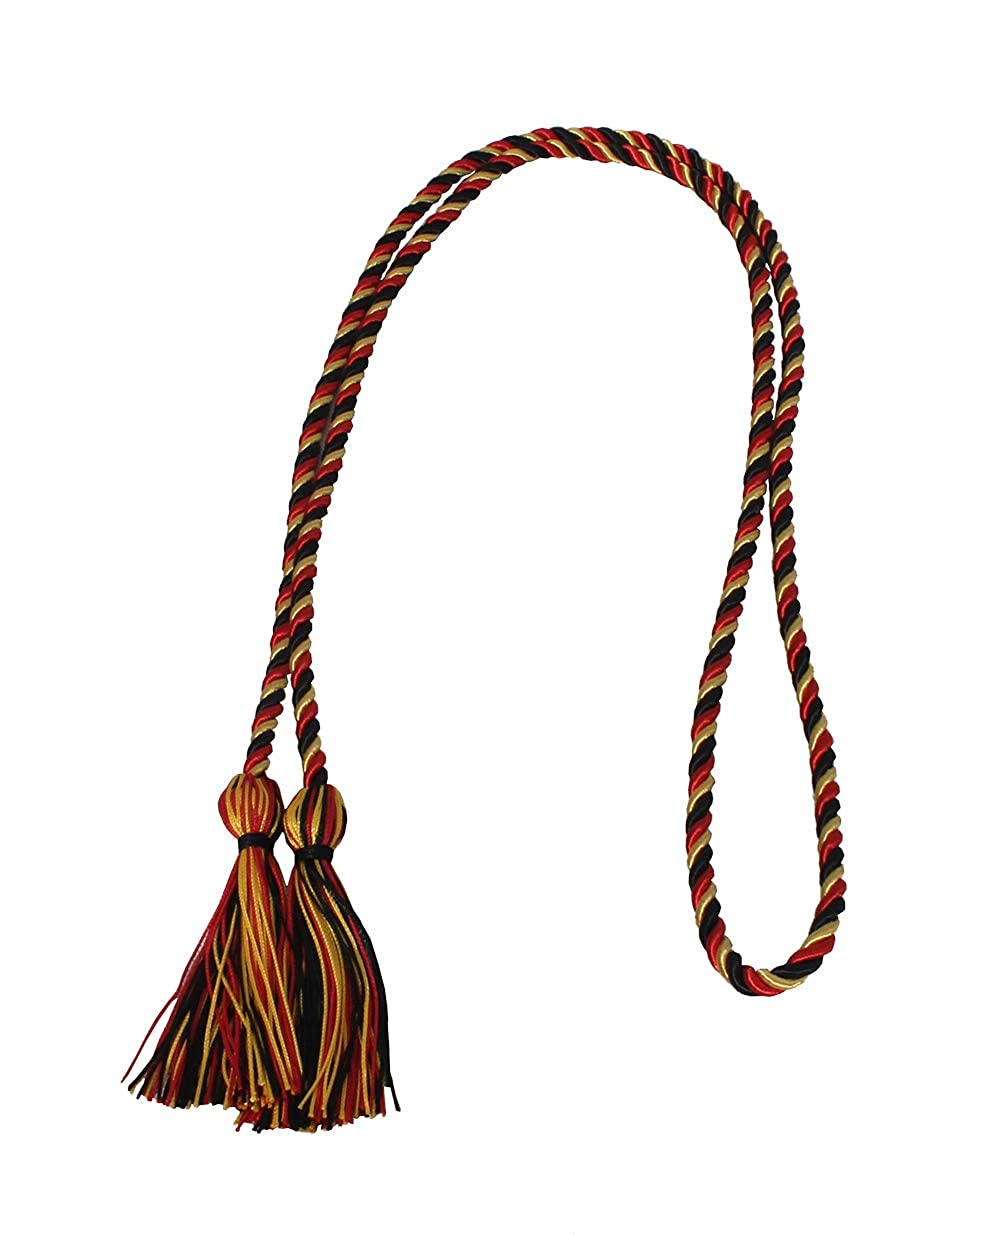 Happy Secret Graduation Two-color Braided Honor Cords